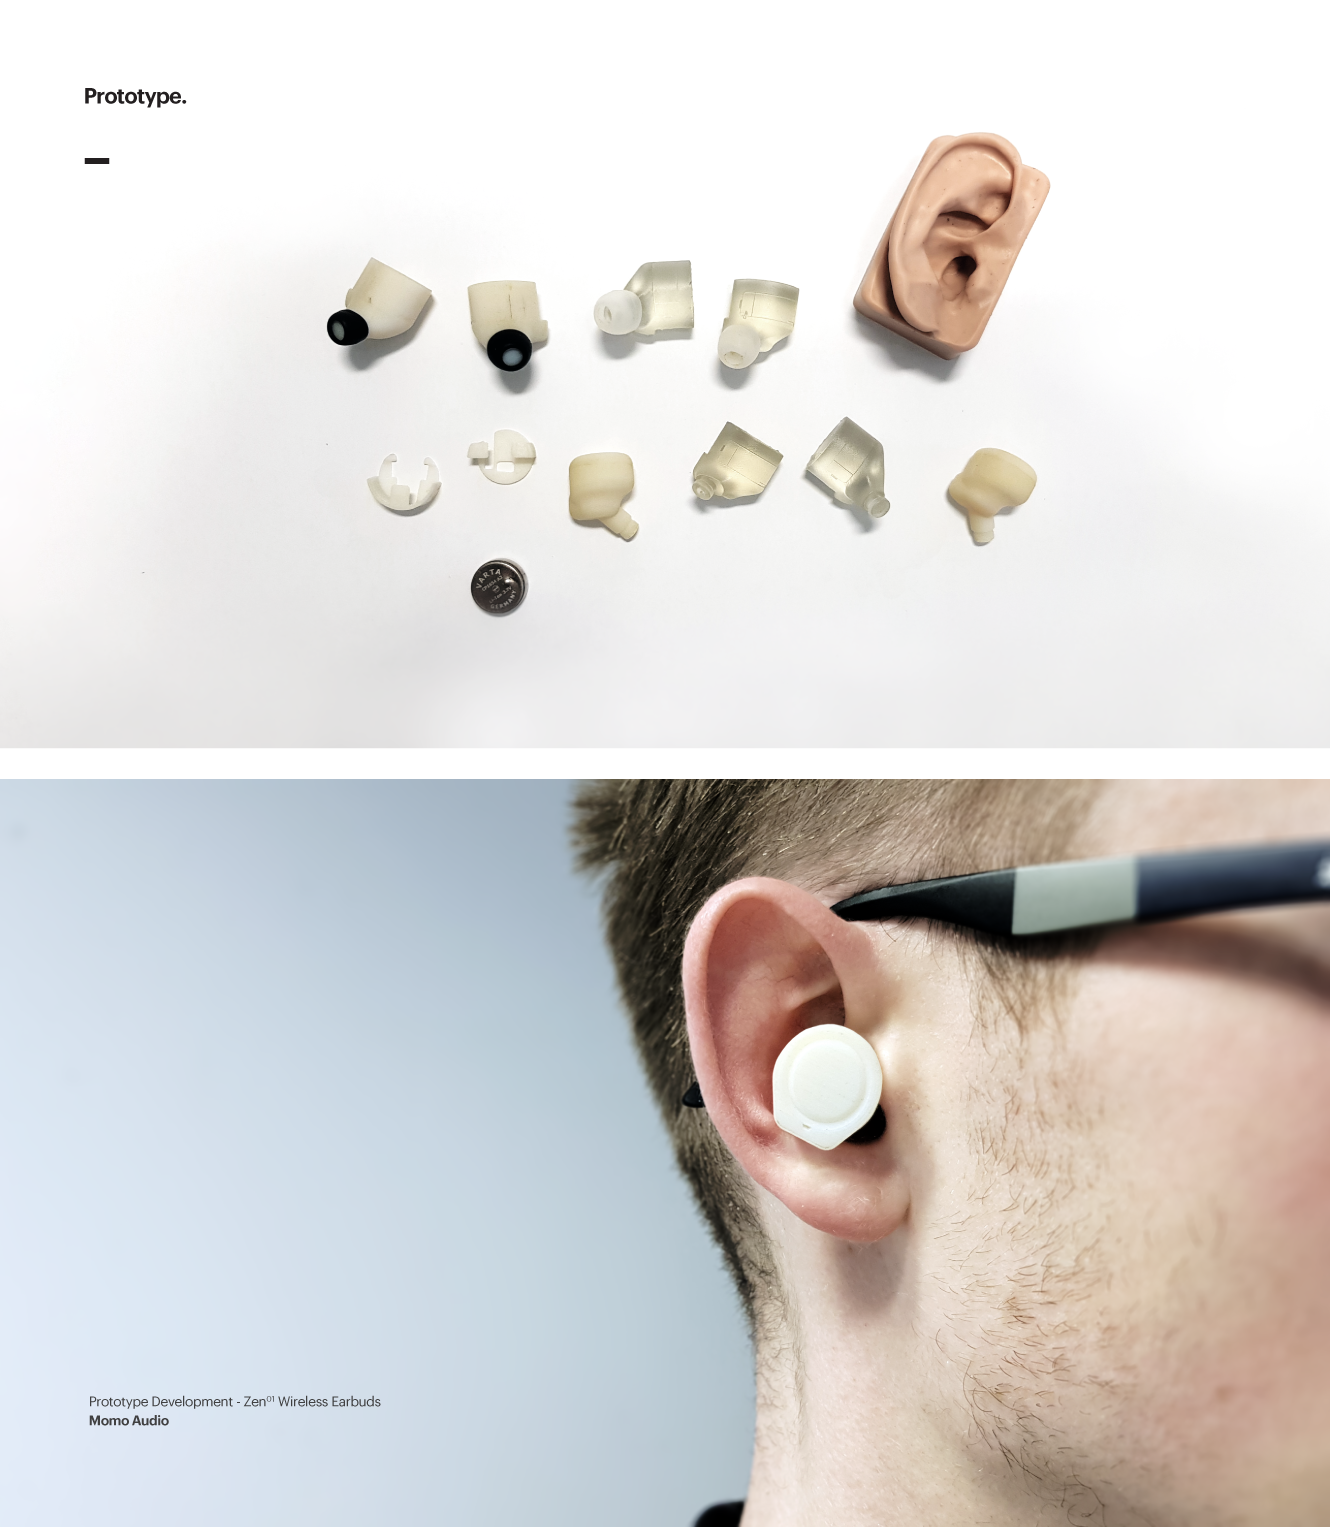 Iterative prototyping of Zen 01 wireless earbud